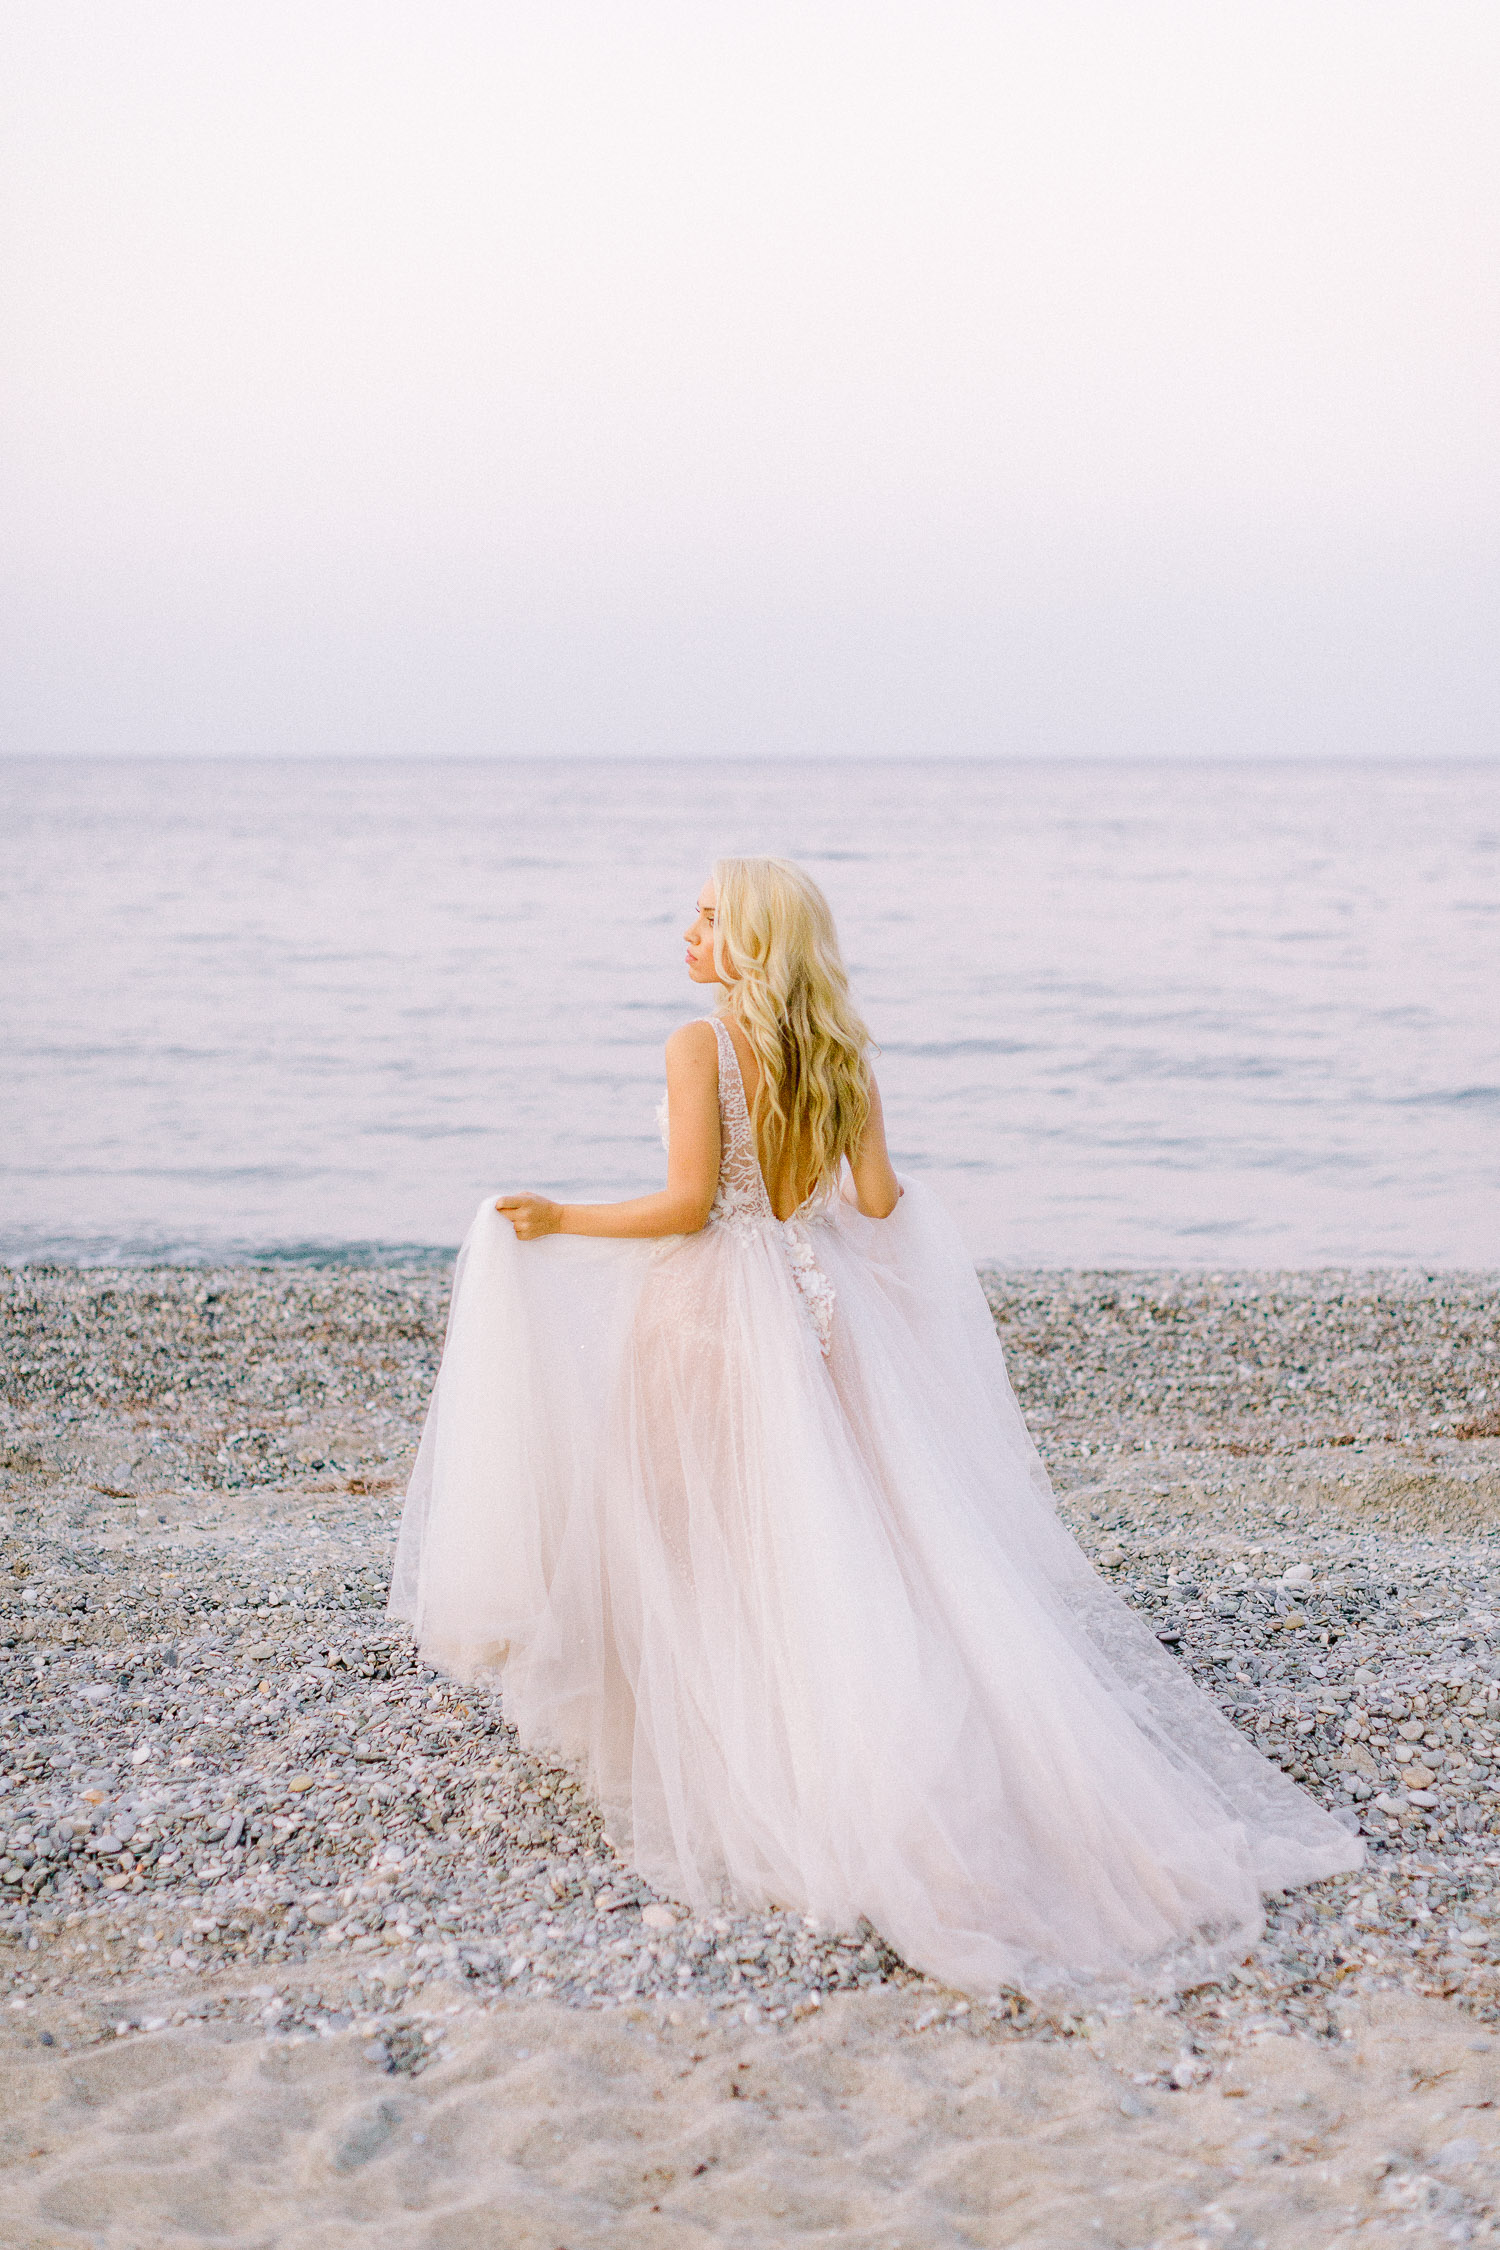 romantic coastal wedding gorgeous blonde bride wearing a romantic lace wedding gown